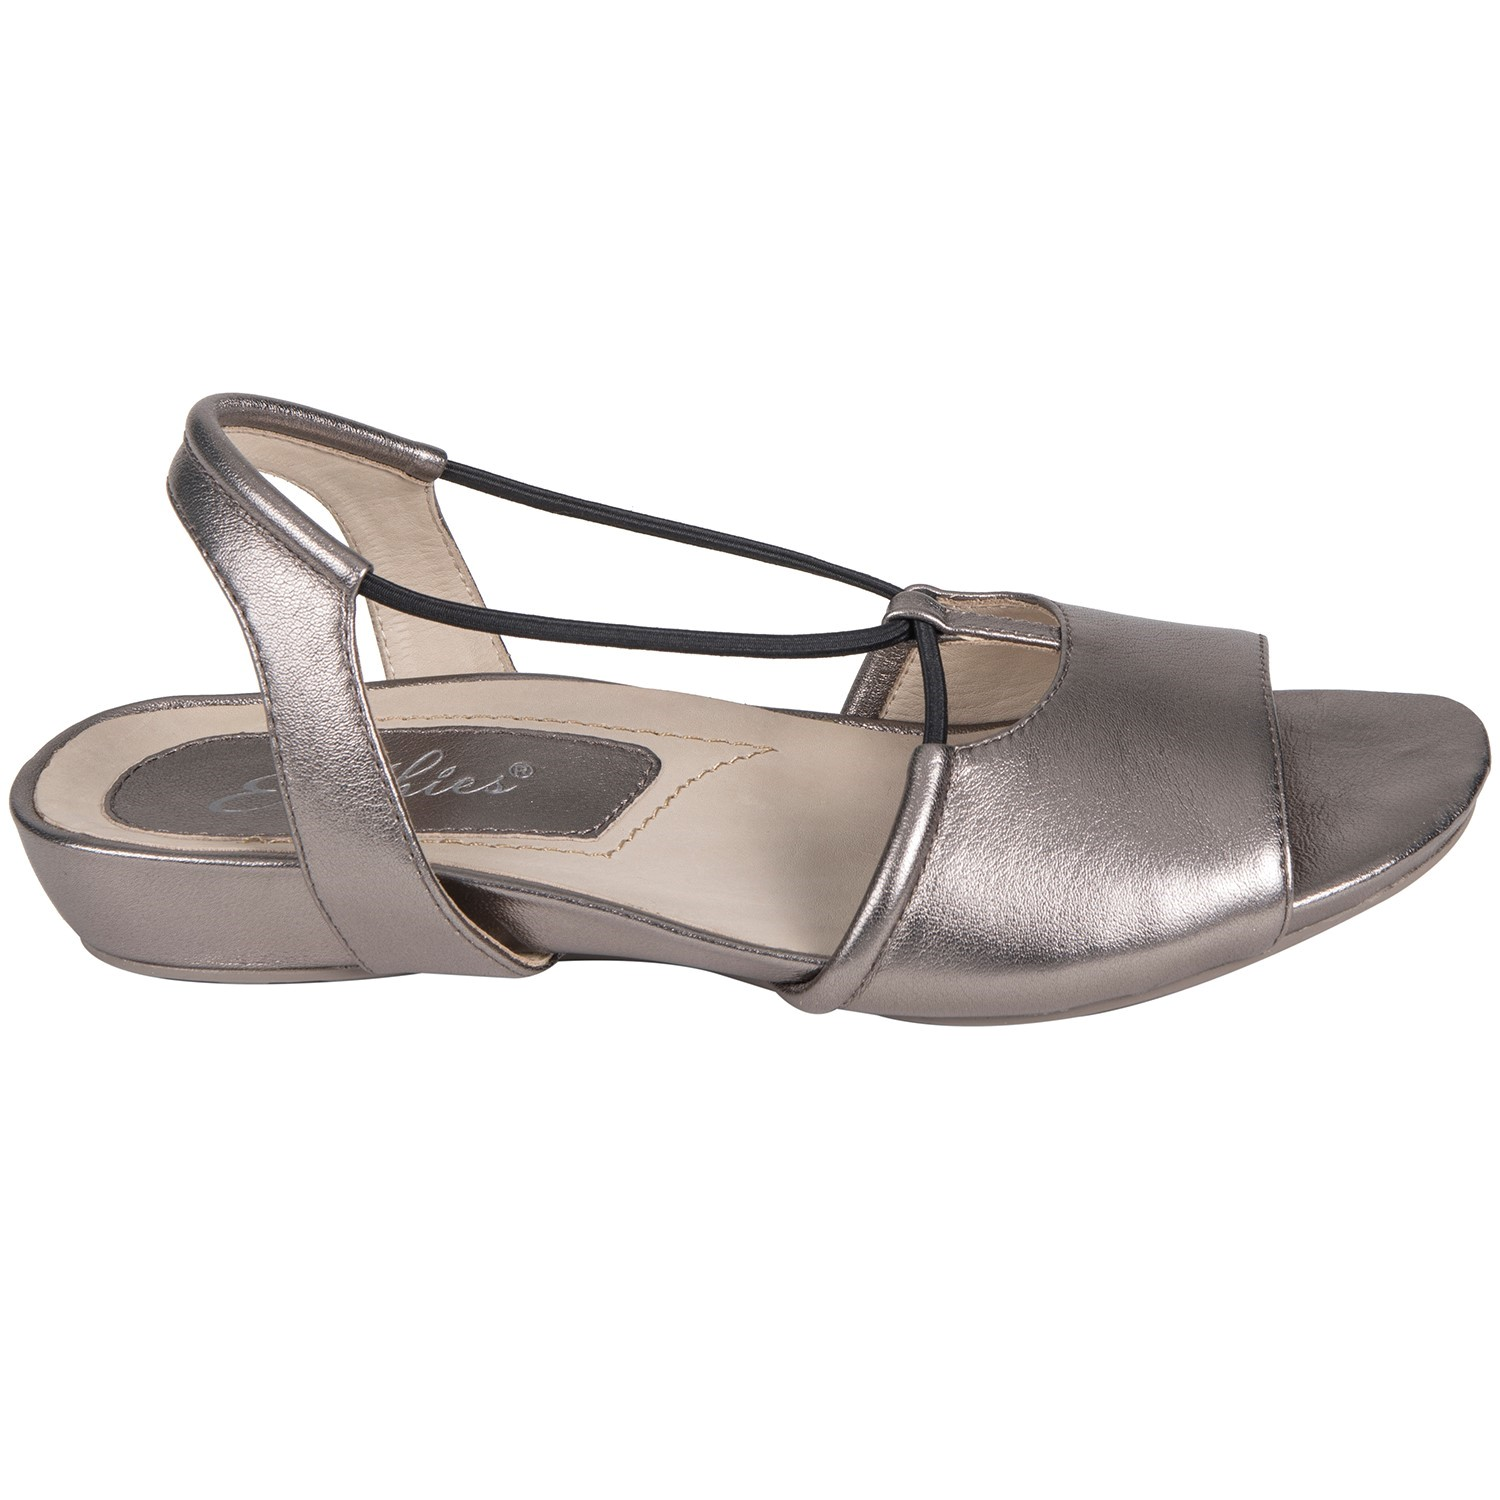 lacona women Earthies lacona - women's dressy comfort sandals both alluring and graceful with its sophisticated lines, petite wraparound band and rich leather, its the dress sandal that brings the final touch to any wellcurated wardrobe.